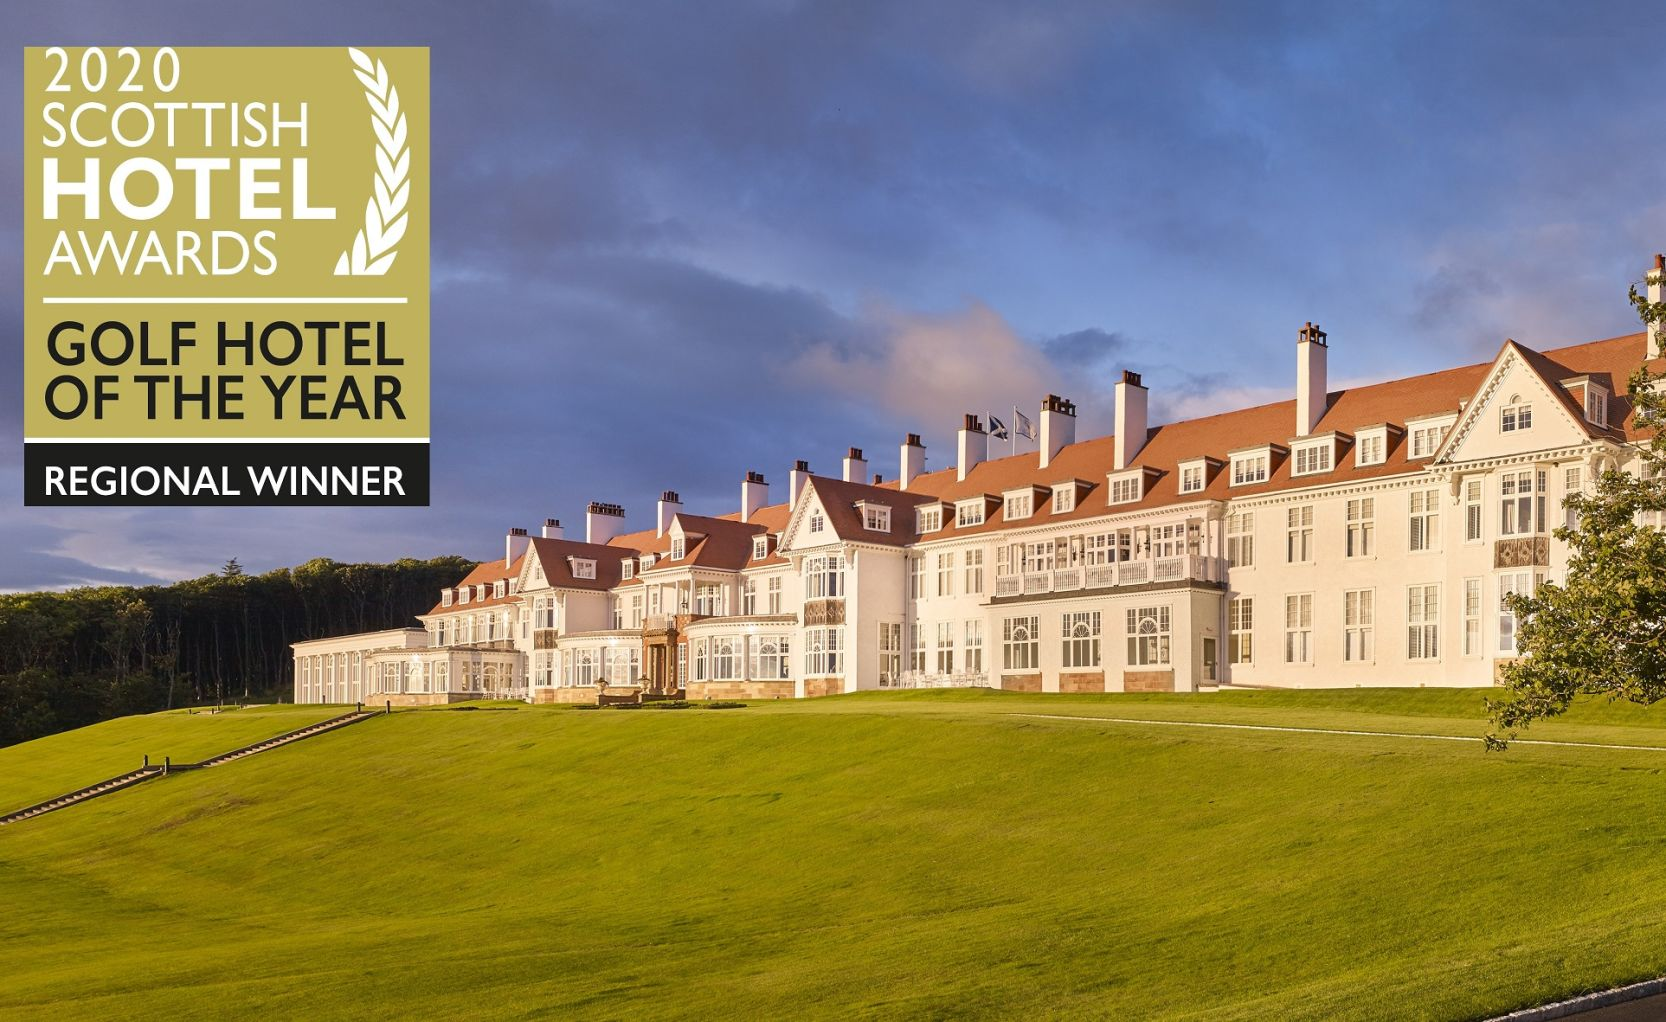 Front Shot of Turnberry with 2020 Scottish Hotel Awards